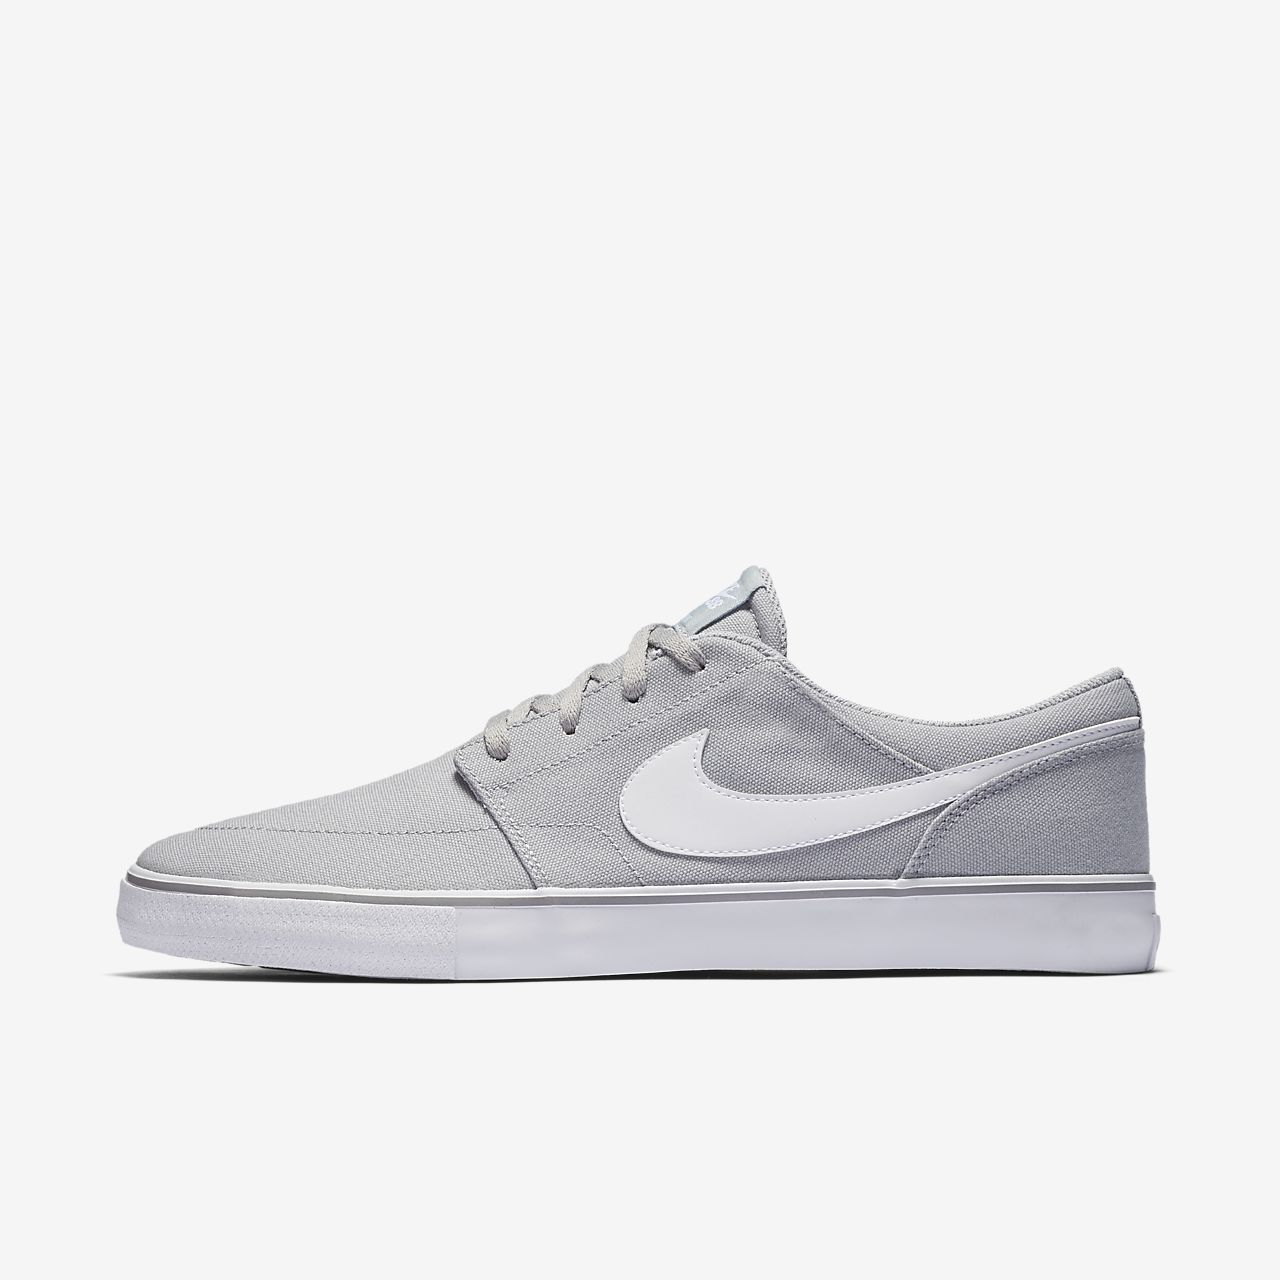 Nike SB Solarsoft Portmore II Men's Skateboarding Shoes Grey/Black/White kN3552A